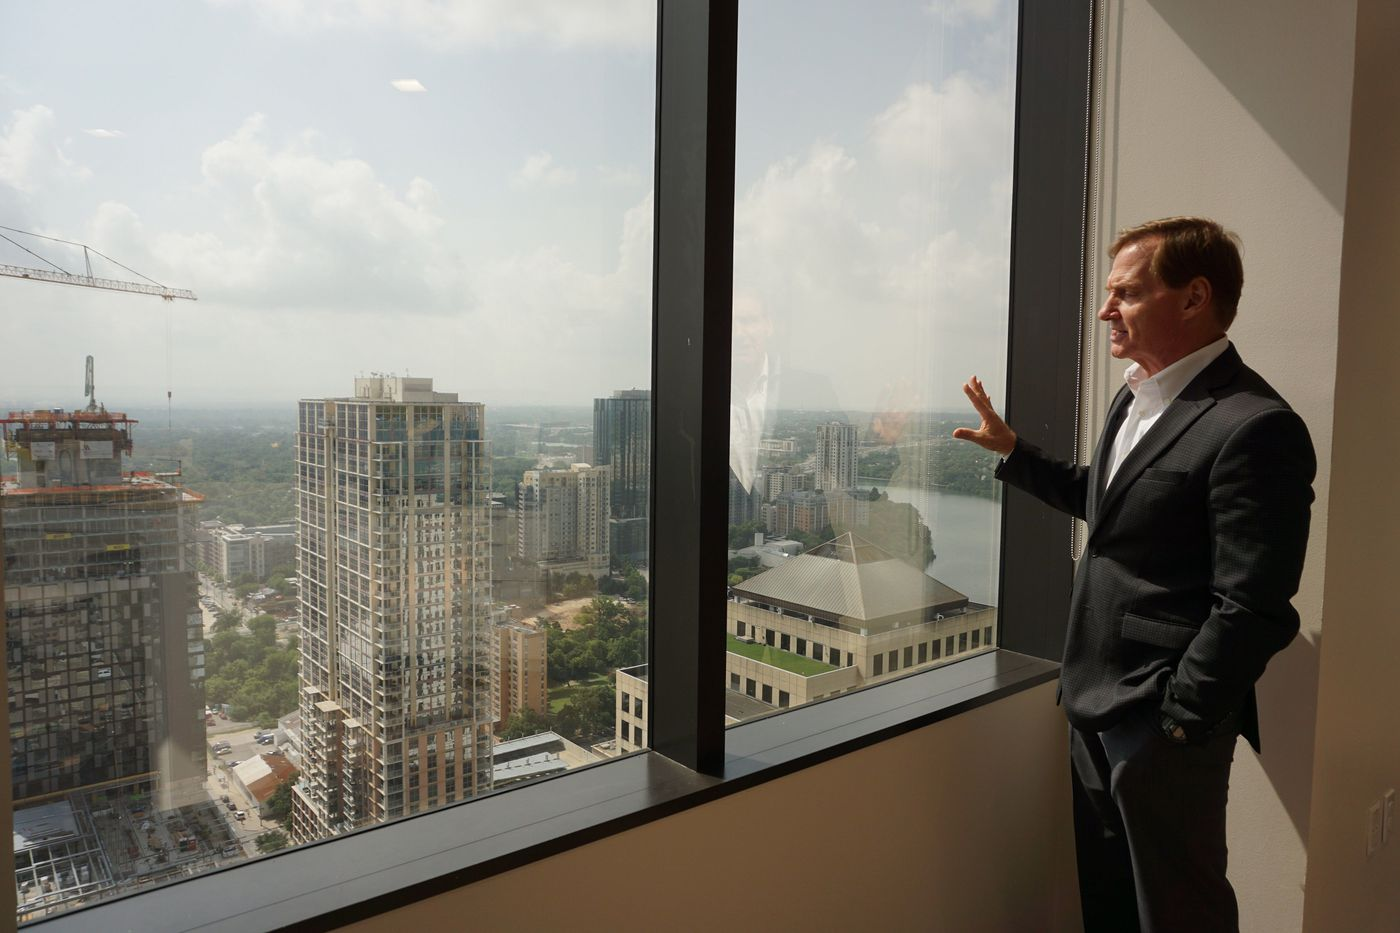 Philly's top office landlord Brandywine has Texas-sized